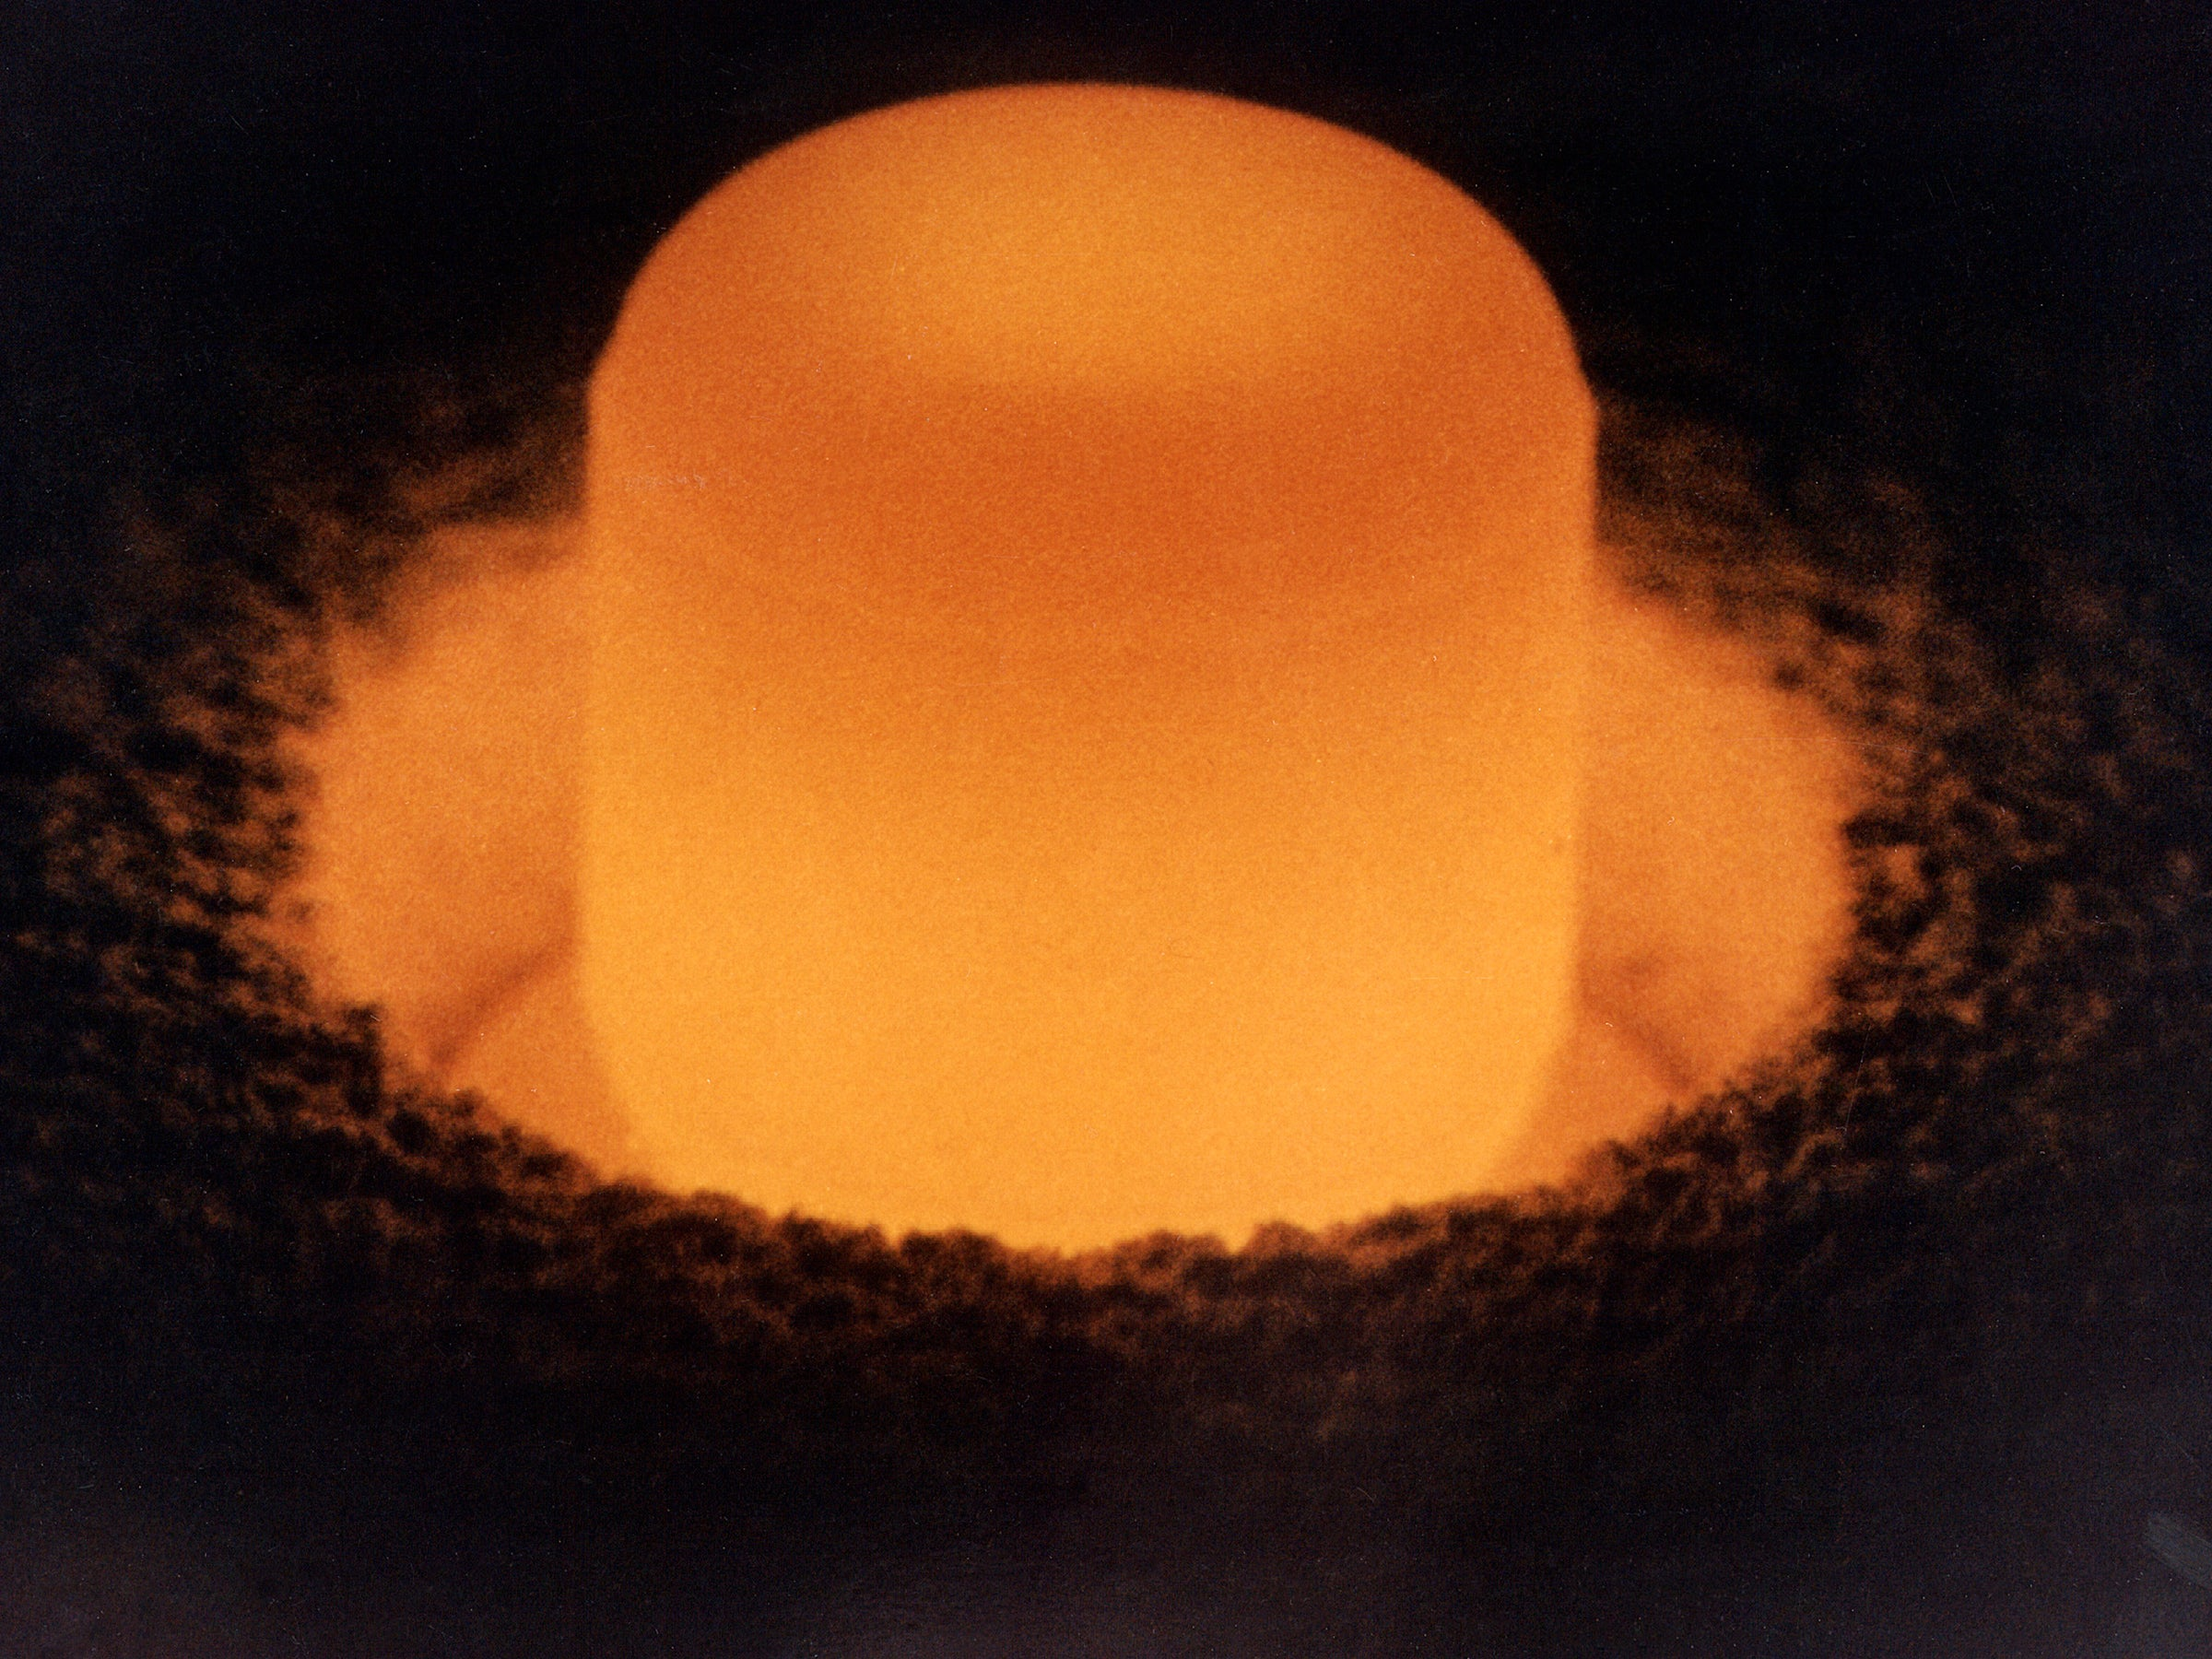 NASA Is Running Out Of Plutonium For Spacecraft, But A New Plan Could Help